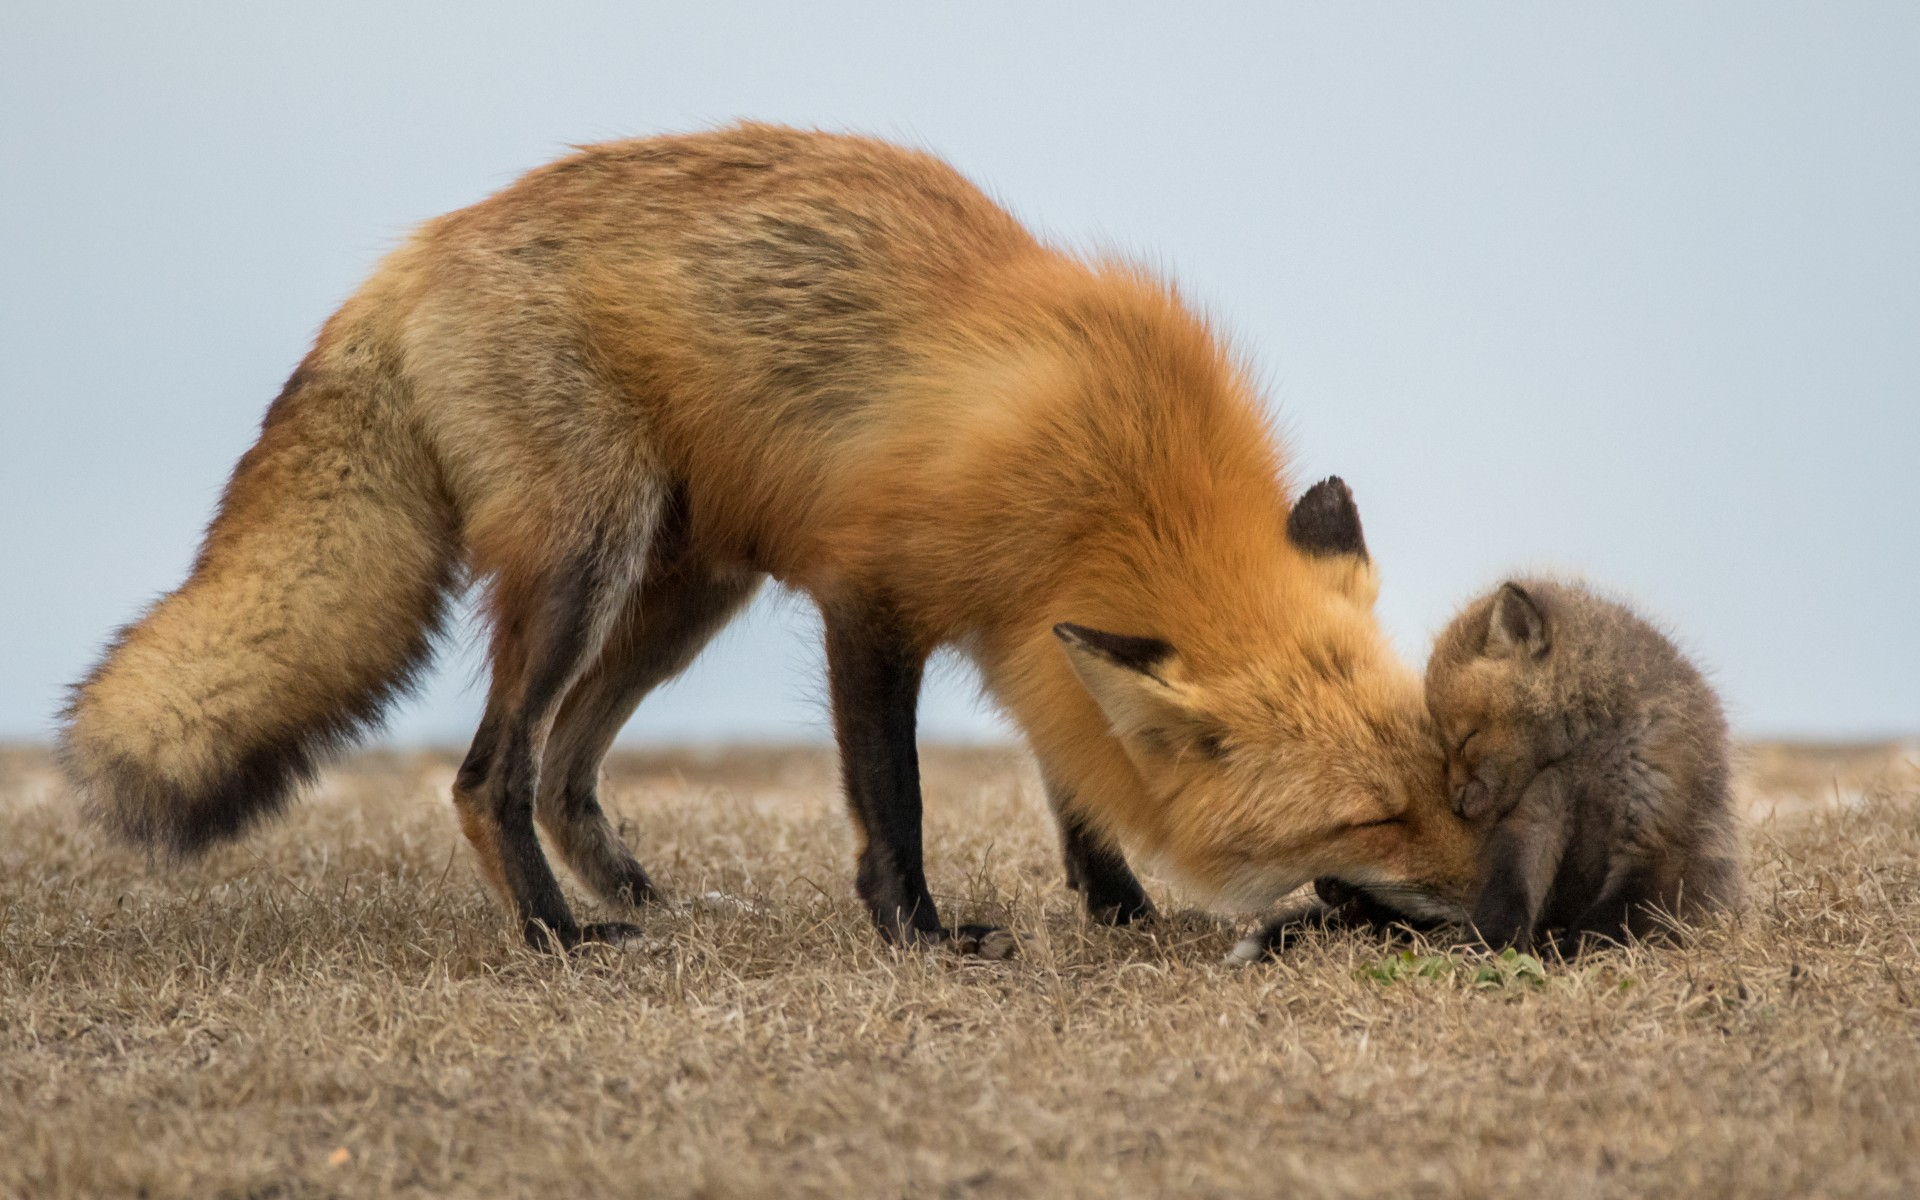 A fox with her baby